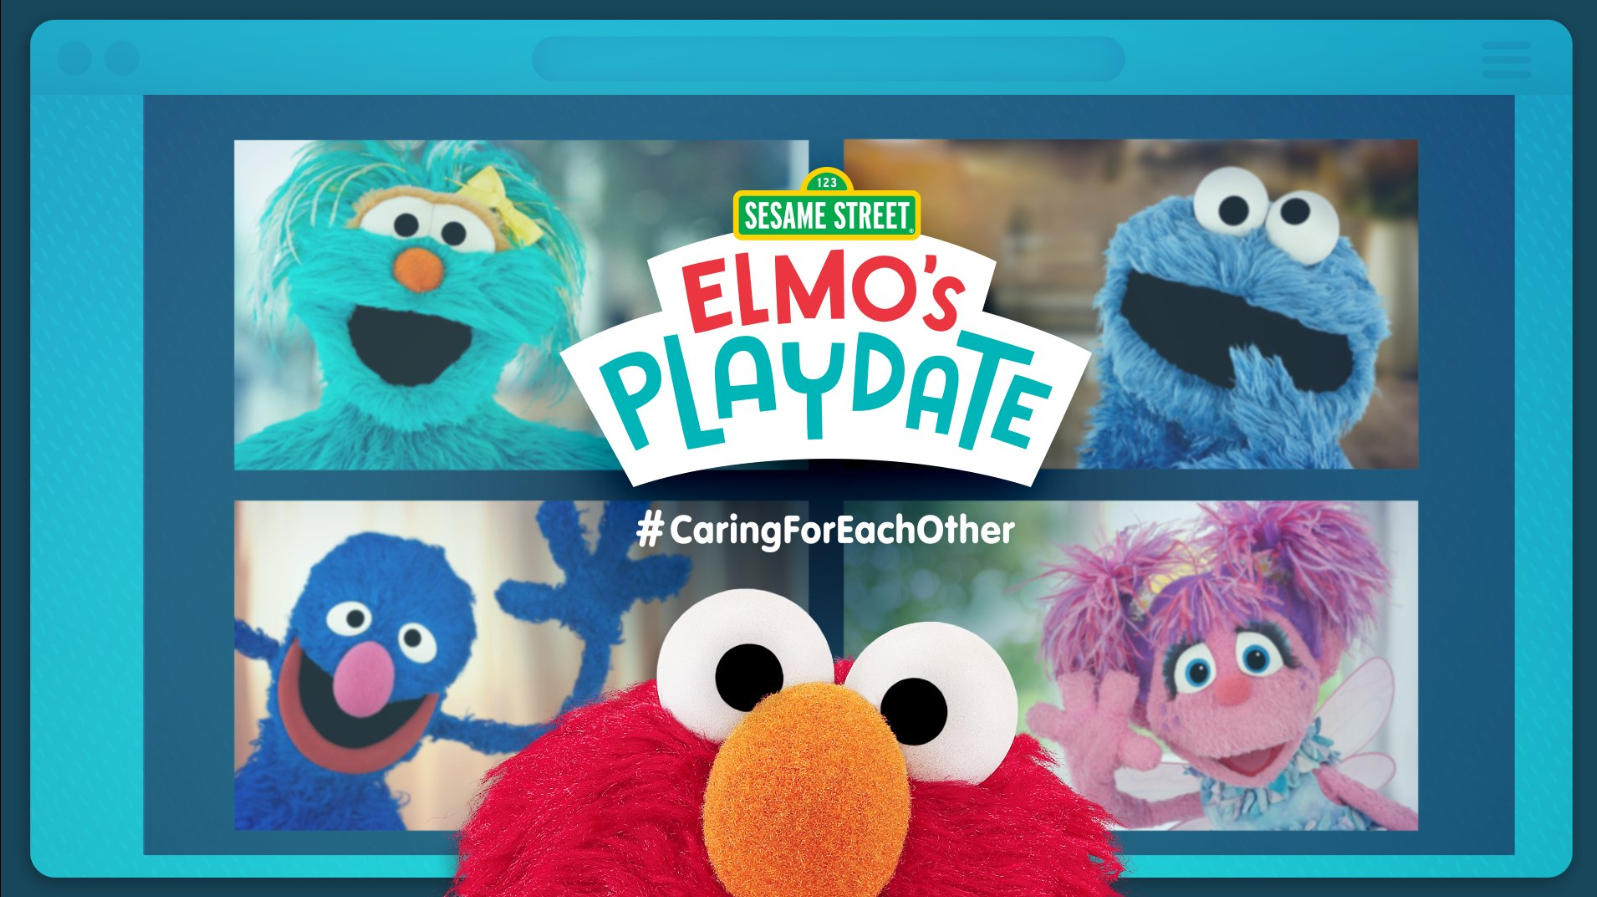 Elmo's virtual playdate simulcast!